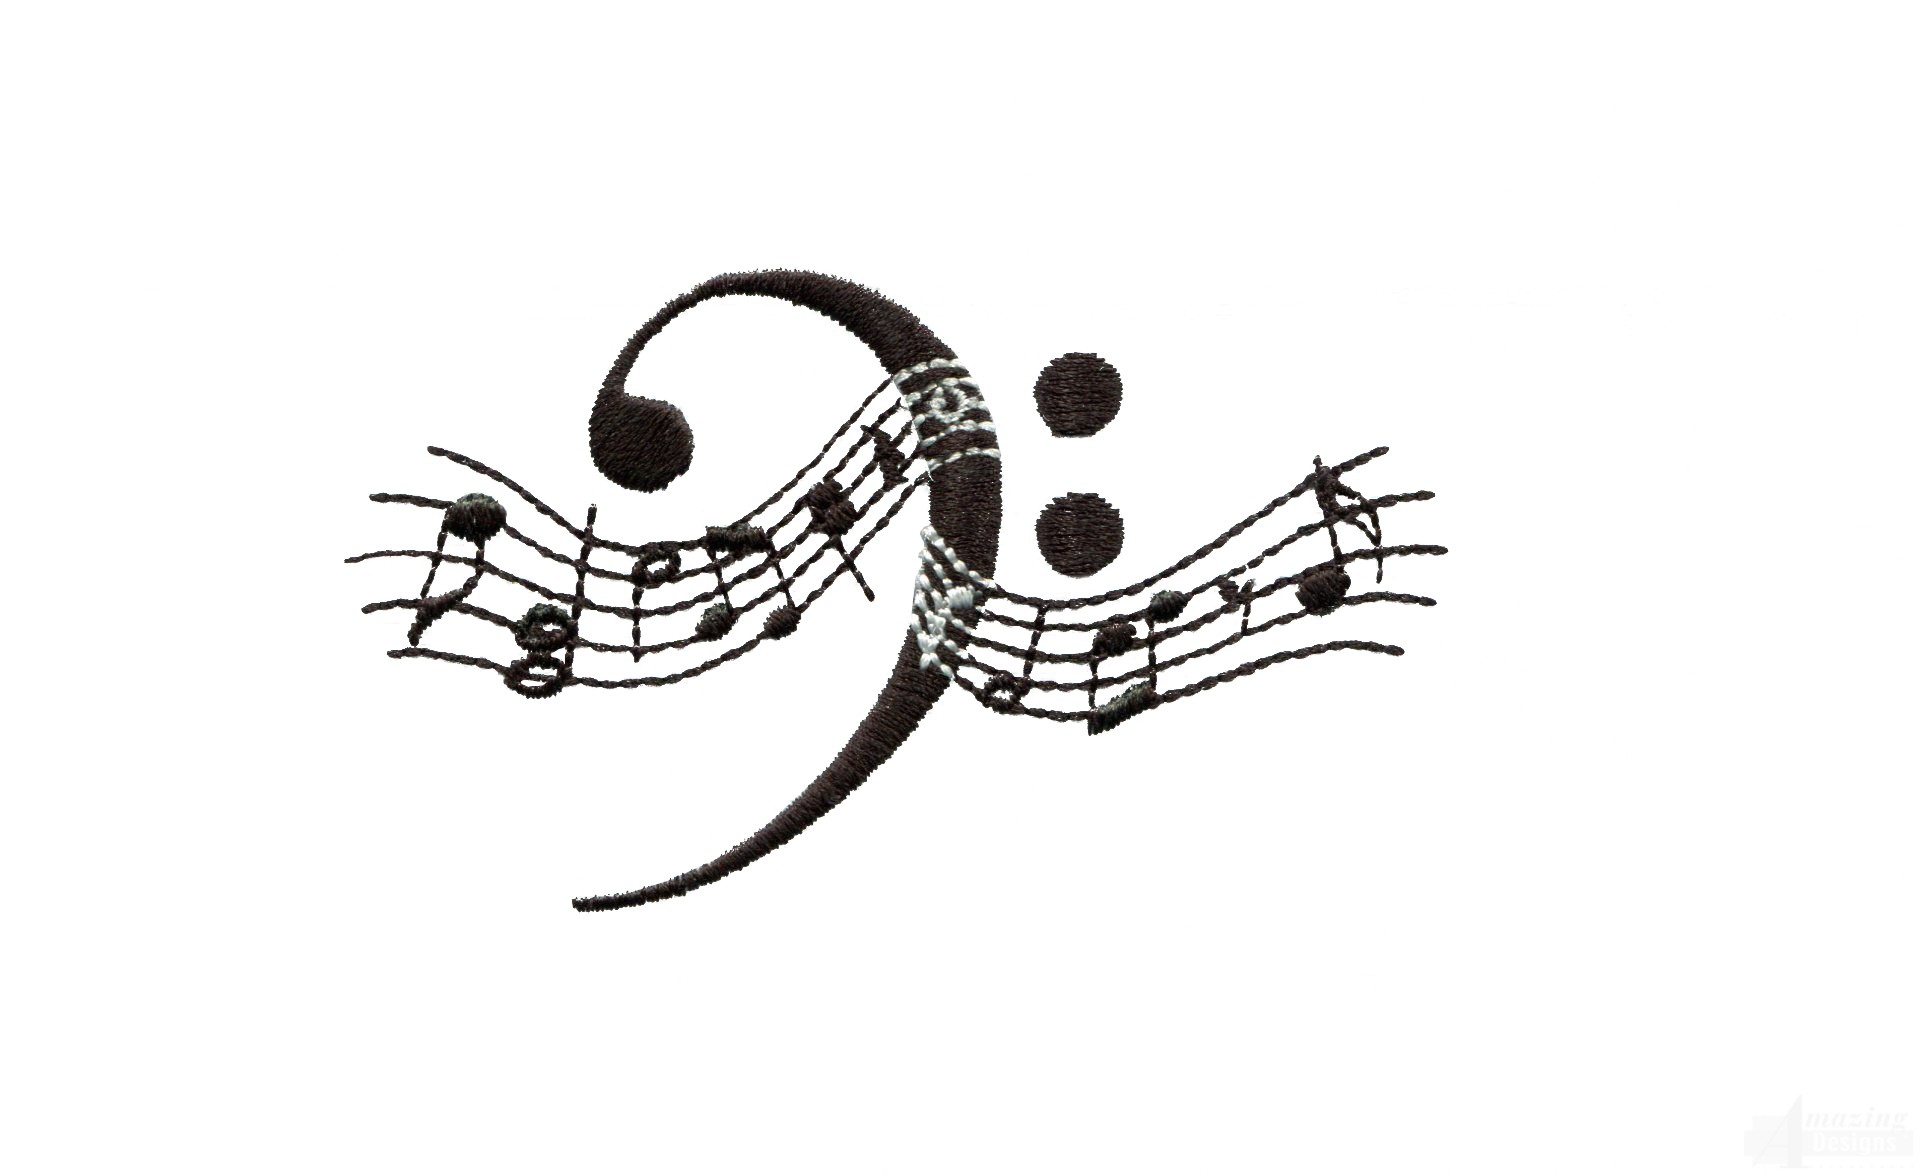 Free Bass Clef Download Free Clip Art Free Clip Art On Clipart Library